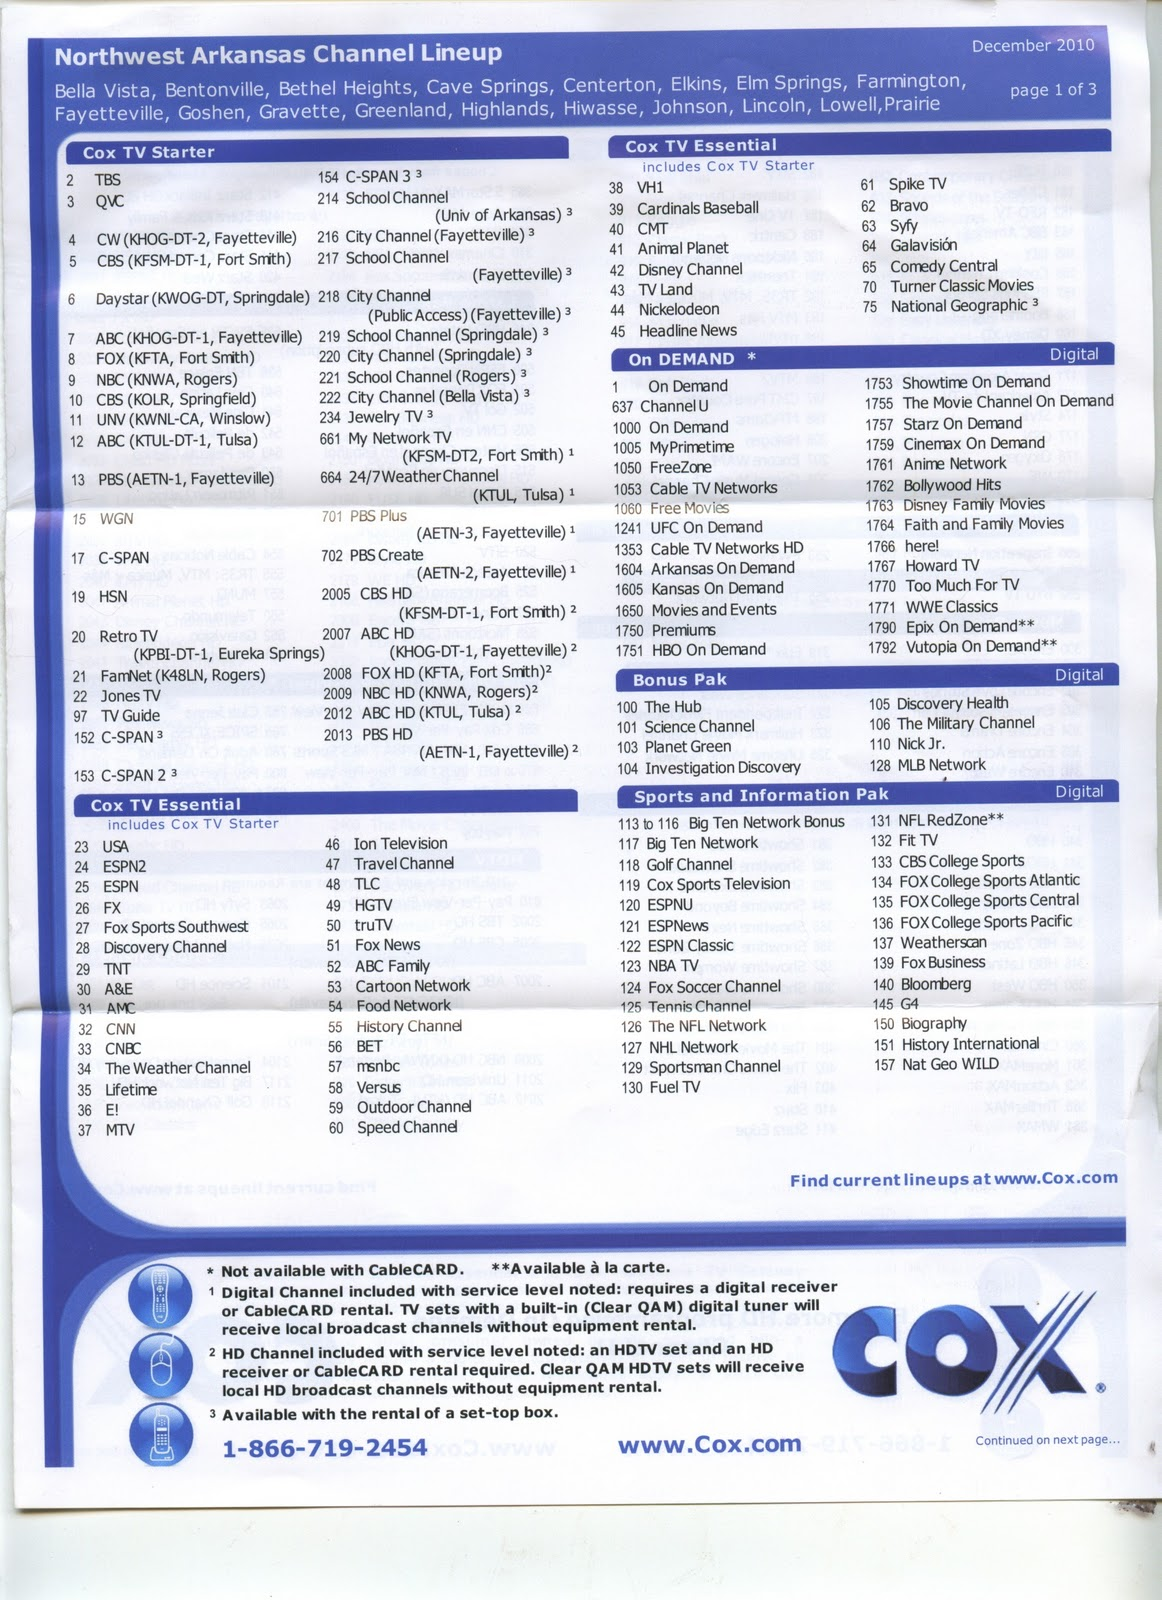 Cox Digital Channel Guide Pictures to Pin on Pinterest - PinsDaddy